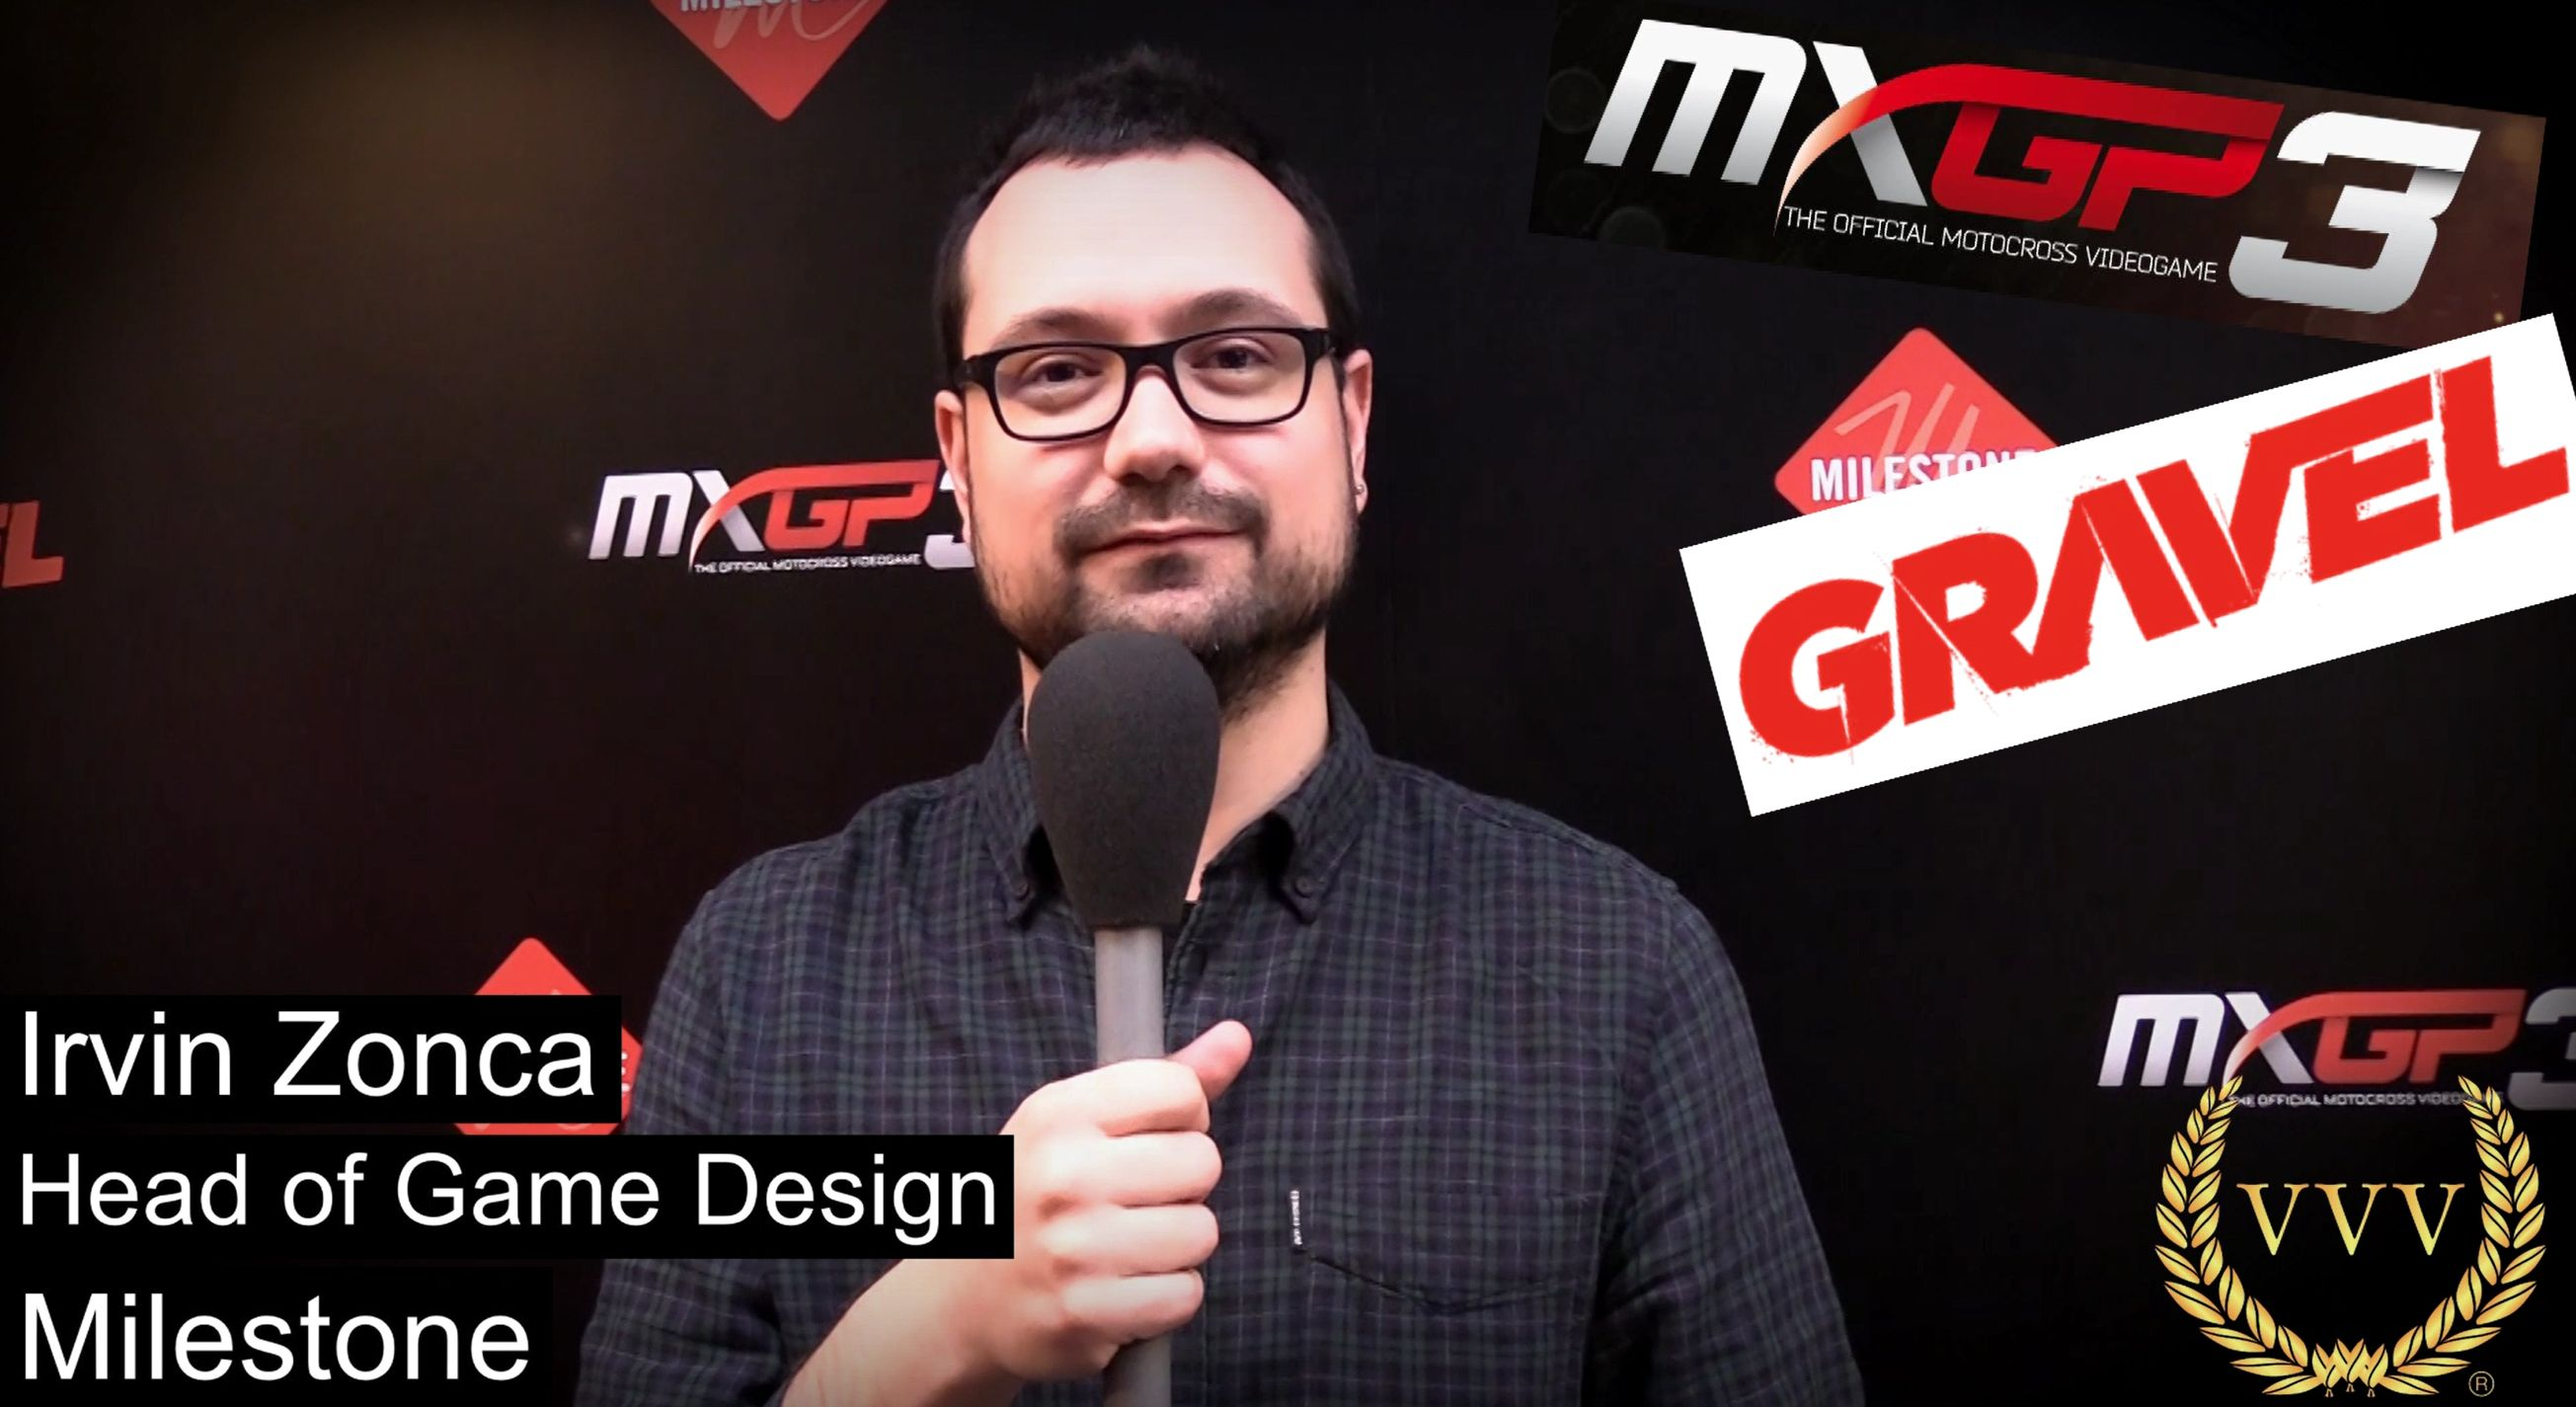 We chat to the head of game design to discuss GRAVEL & MXGP 3